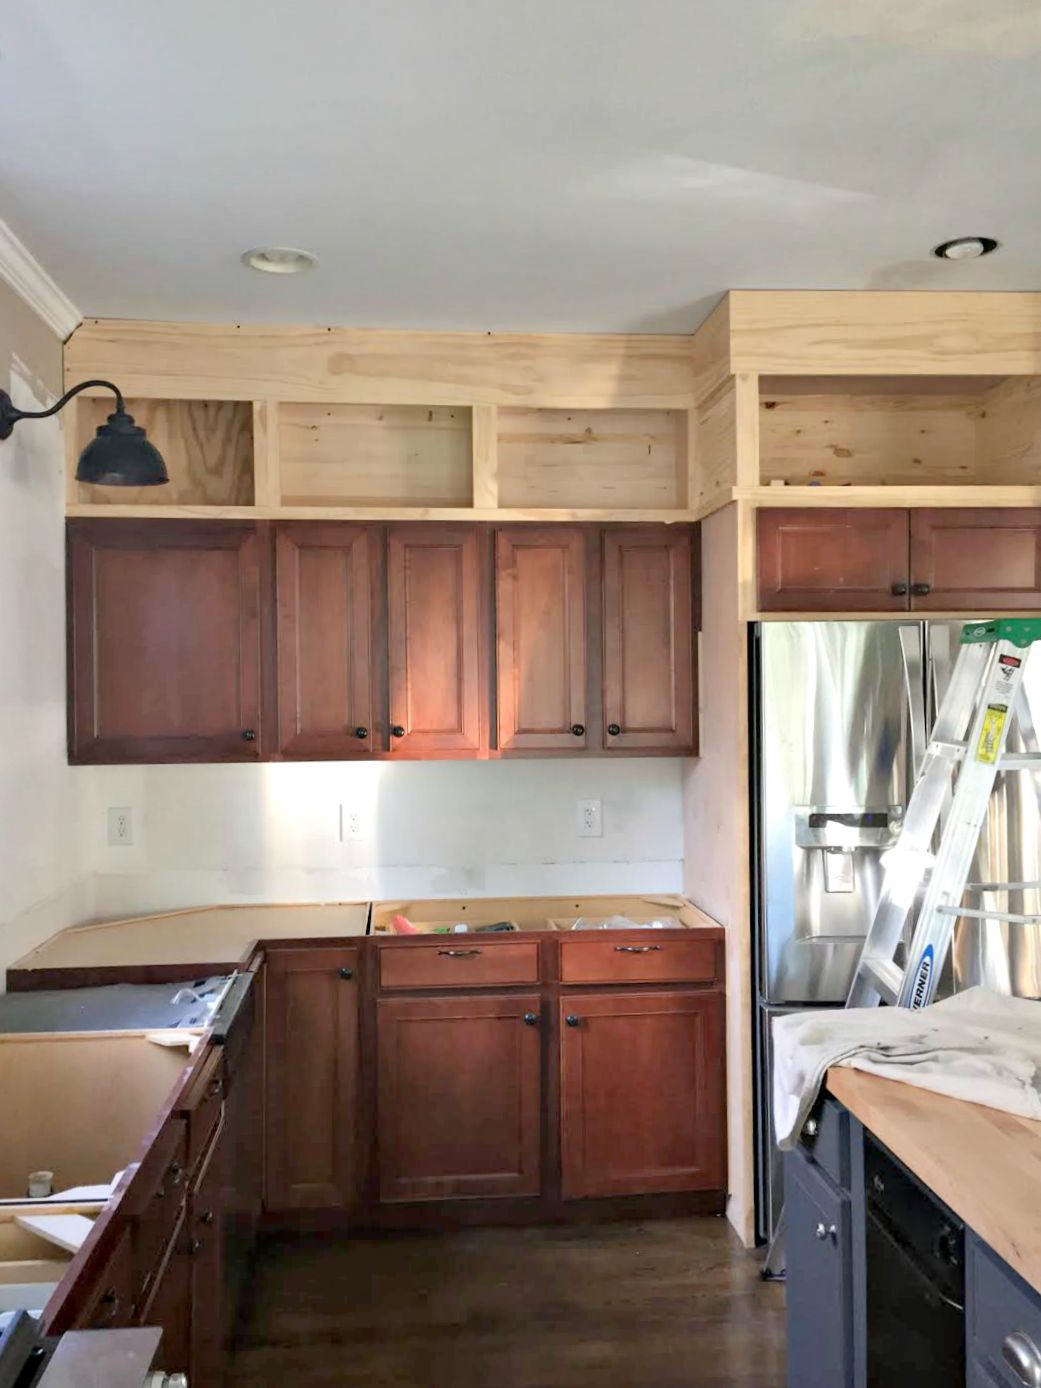 42 Inch Kitchen Cabinets 8 Foot Ceiling - Rooms